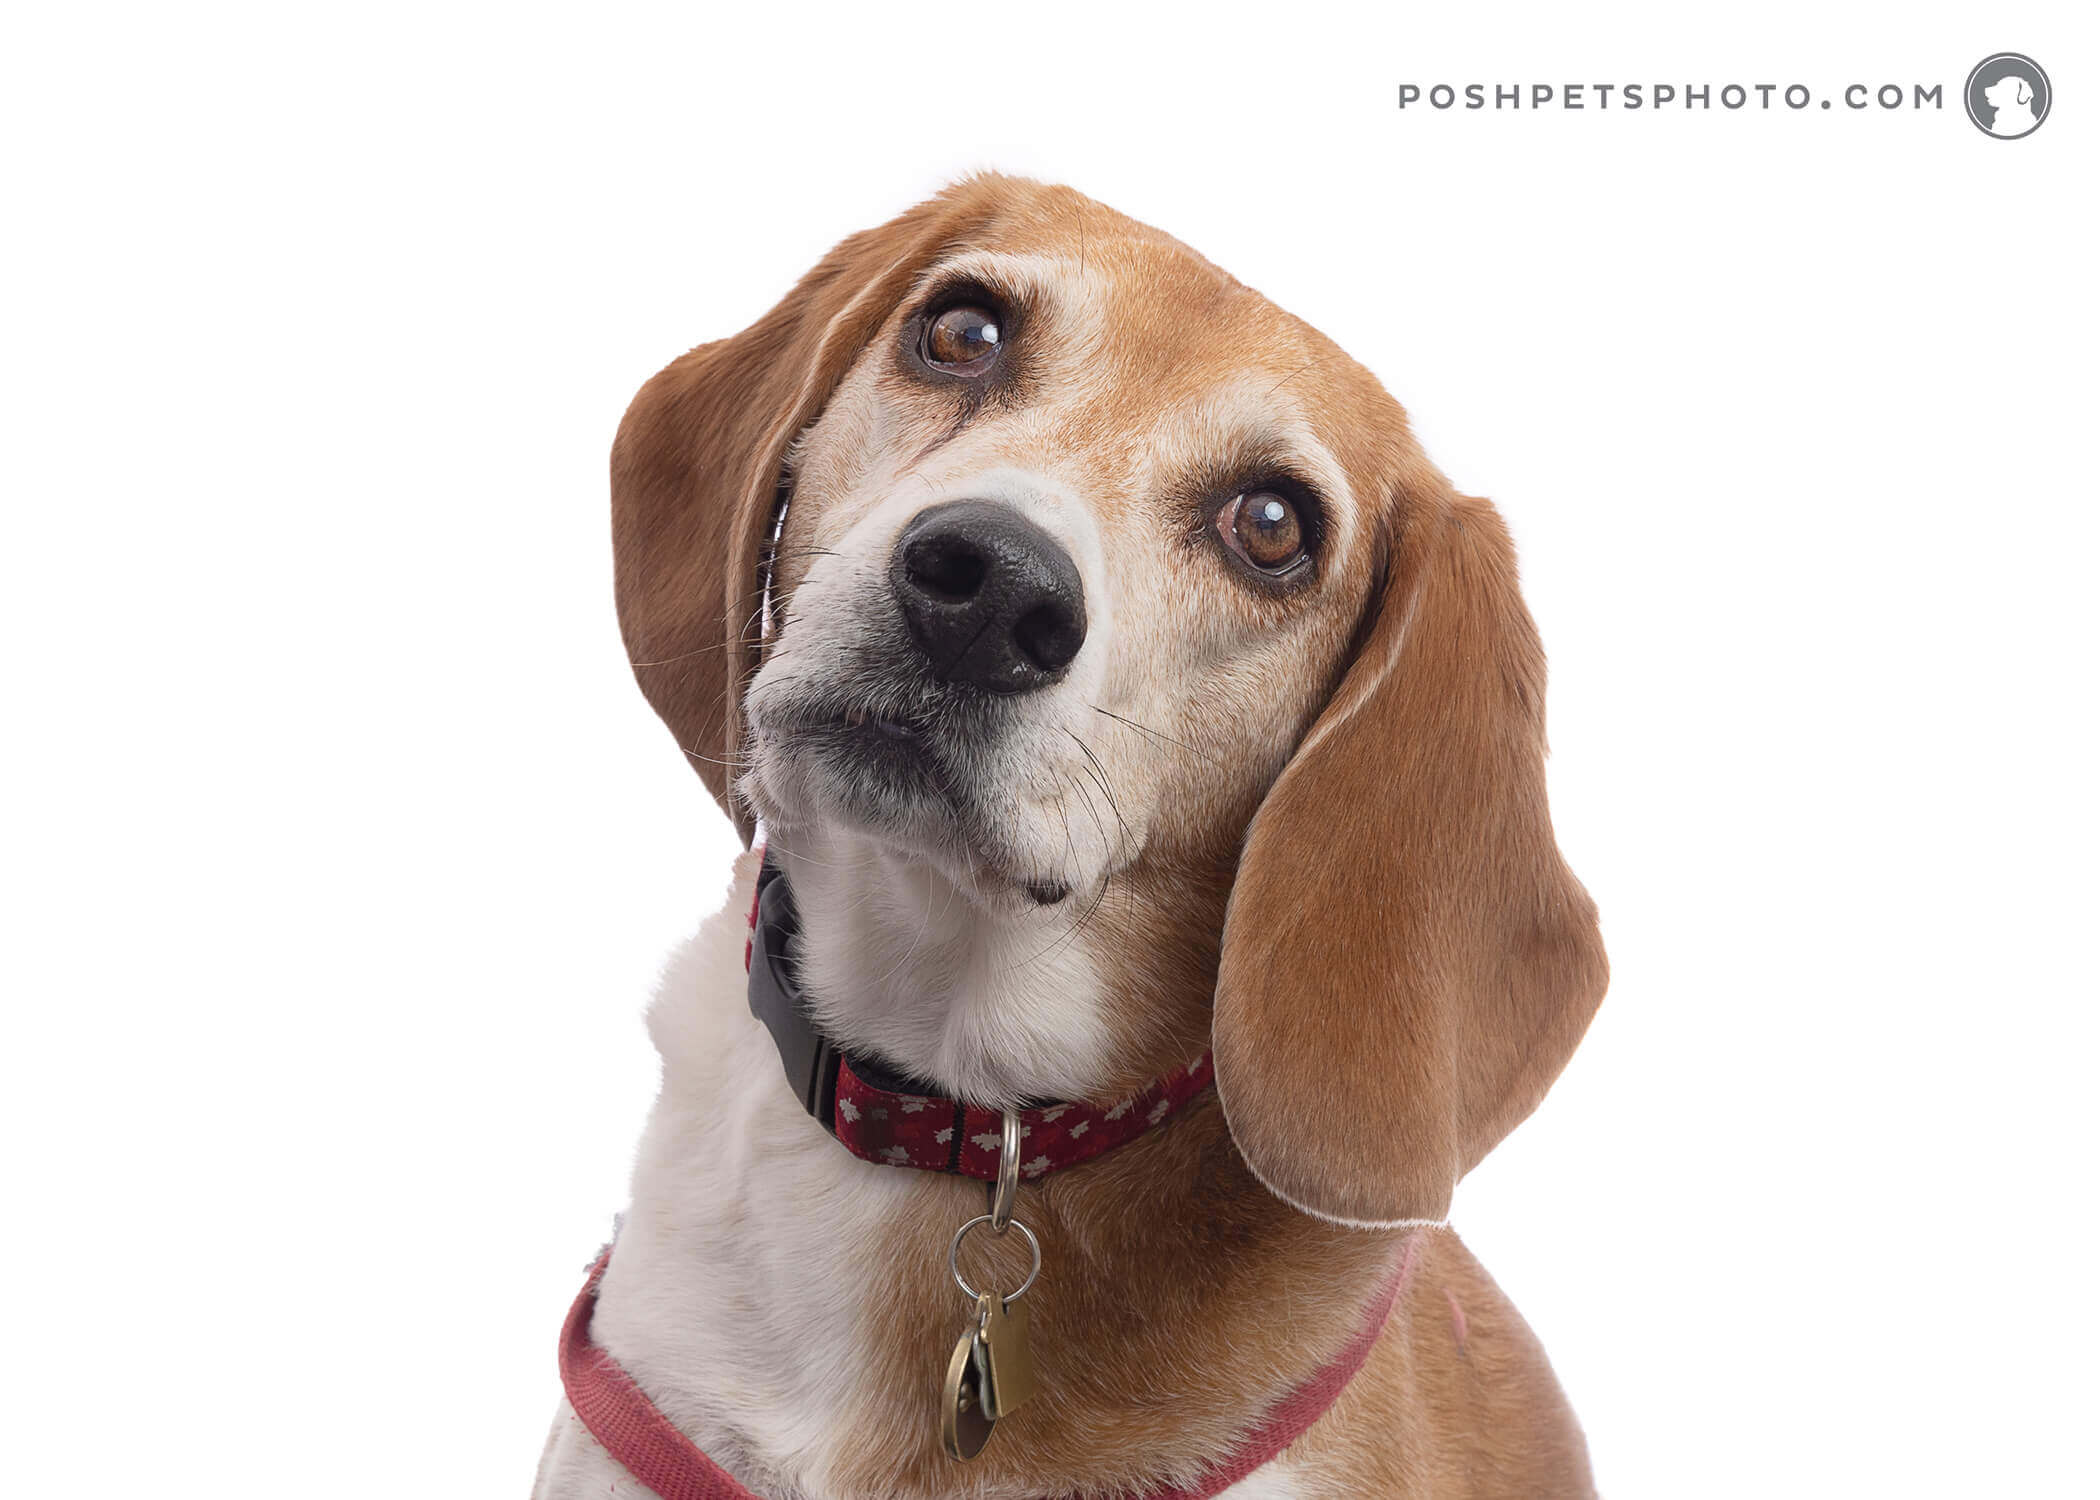 beagle dog with headtilt